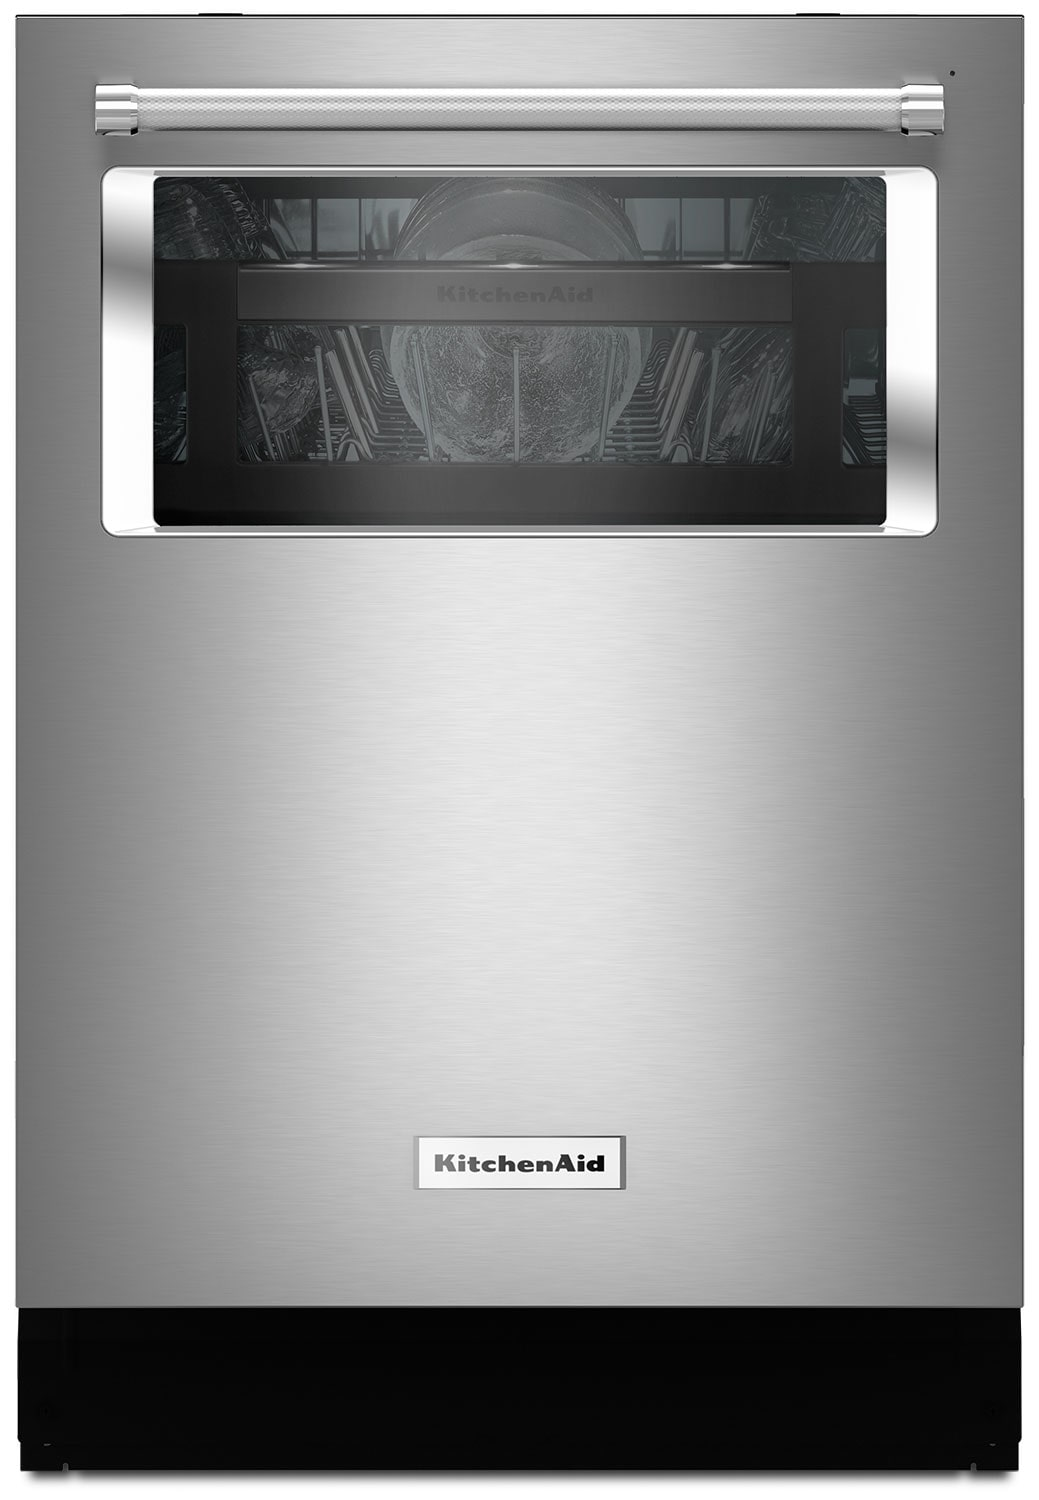 Kitchenaid 24 Dishwasher With Window And Lighted Interior Stainless Steel The Brick